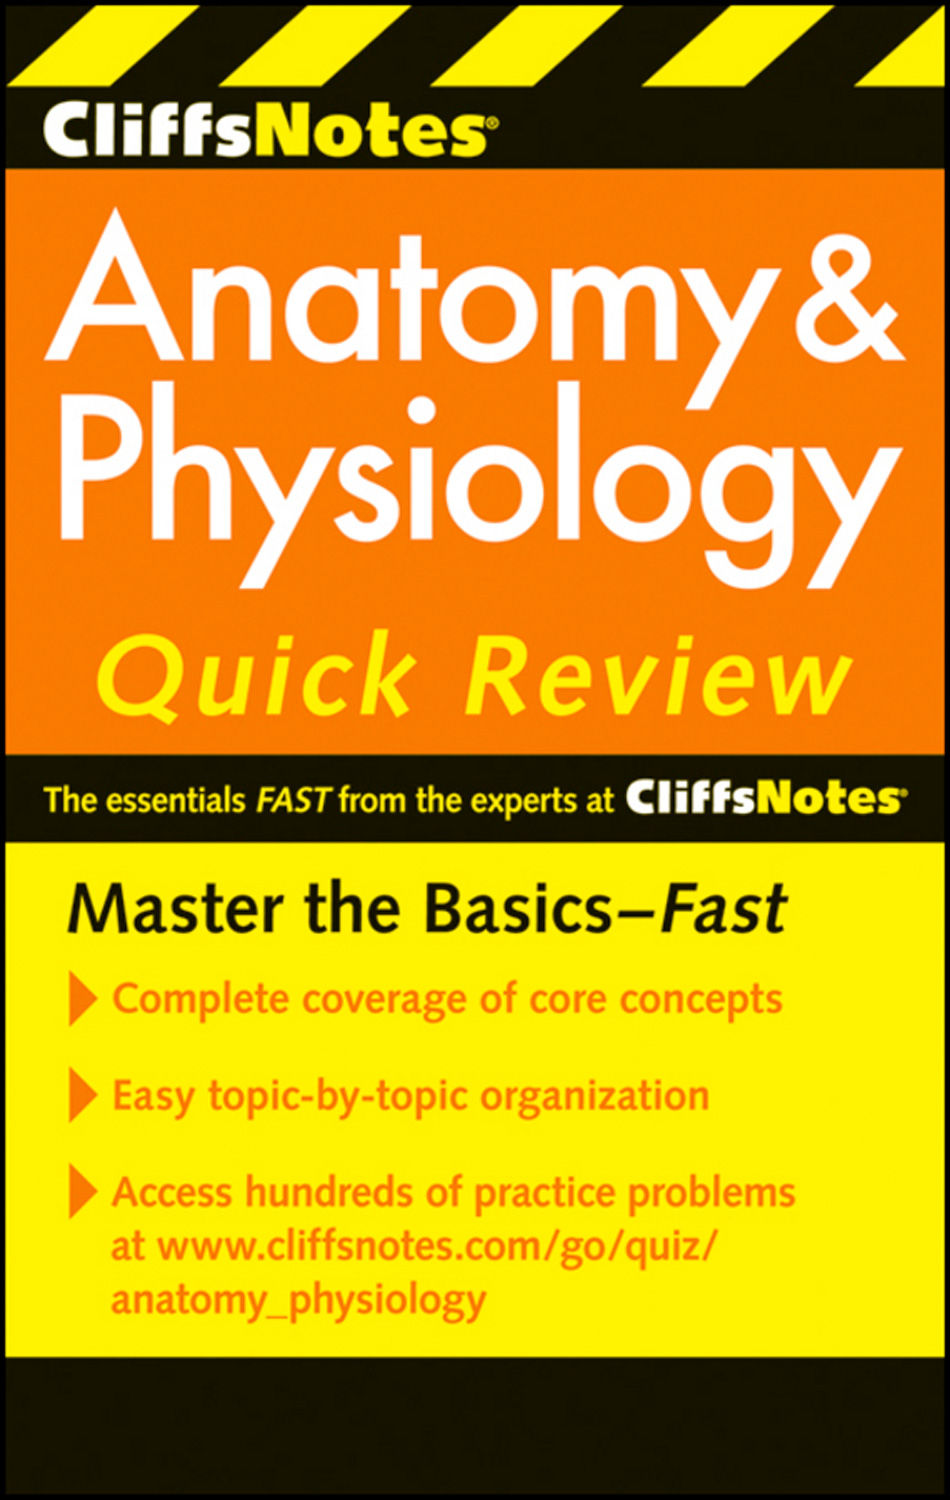 Cliffsnotes Anatomy and Physiology Quick Review by Seiler, Otto, 1873-,